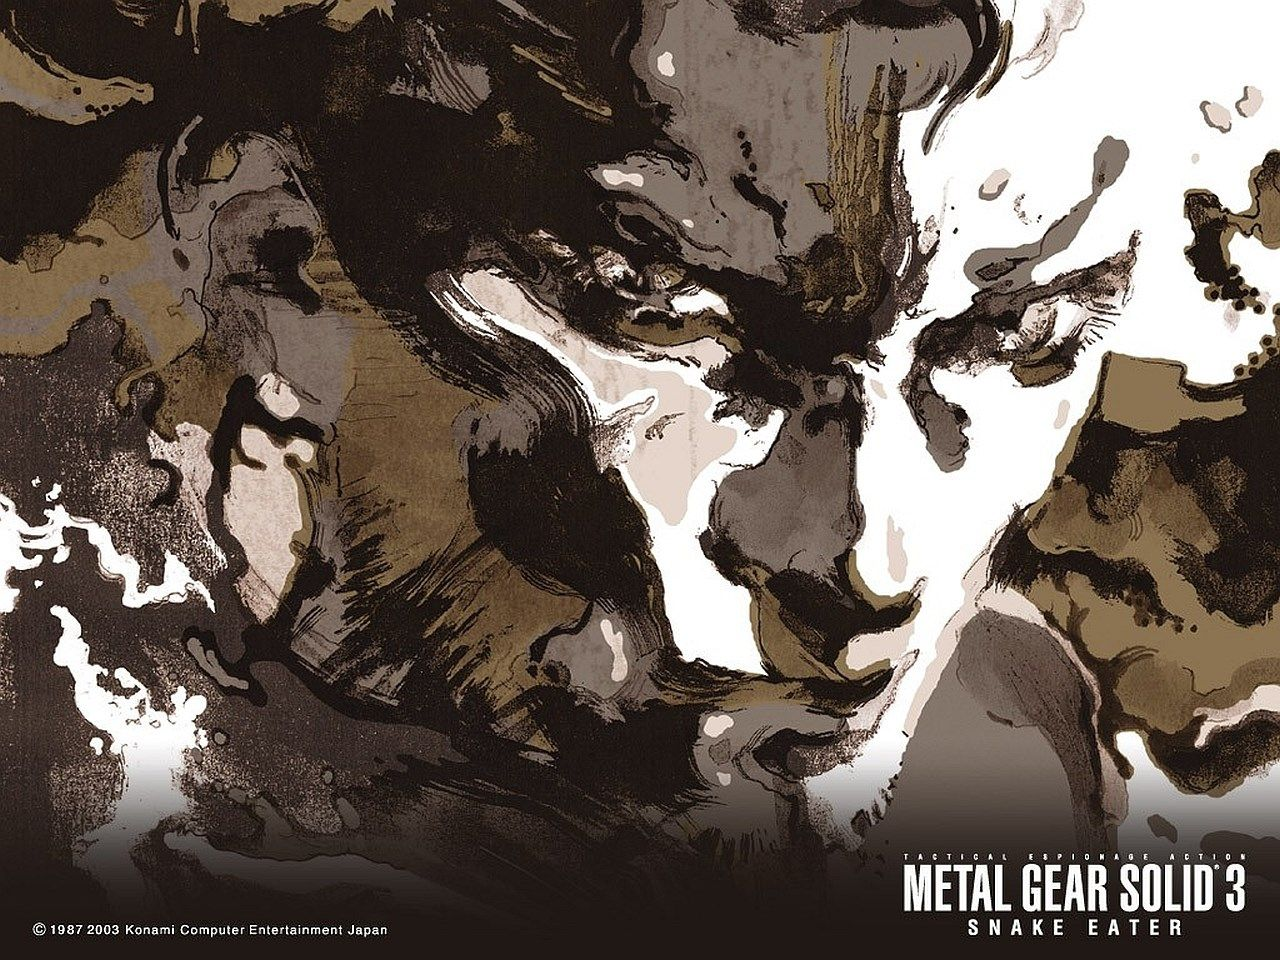 1611923 High Resolution Wallpapers Metal Gear Solid 3 Snake Eater Wallpaper